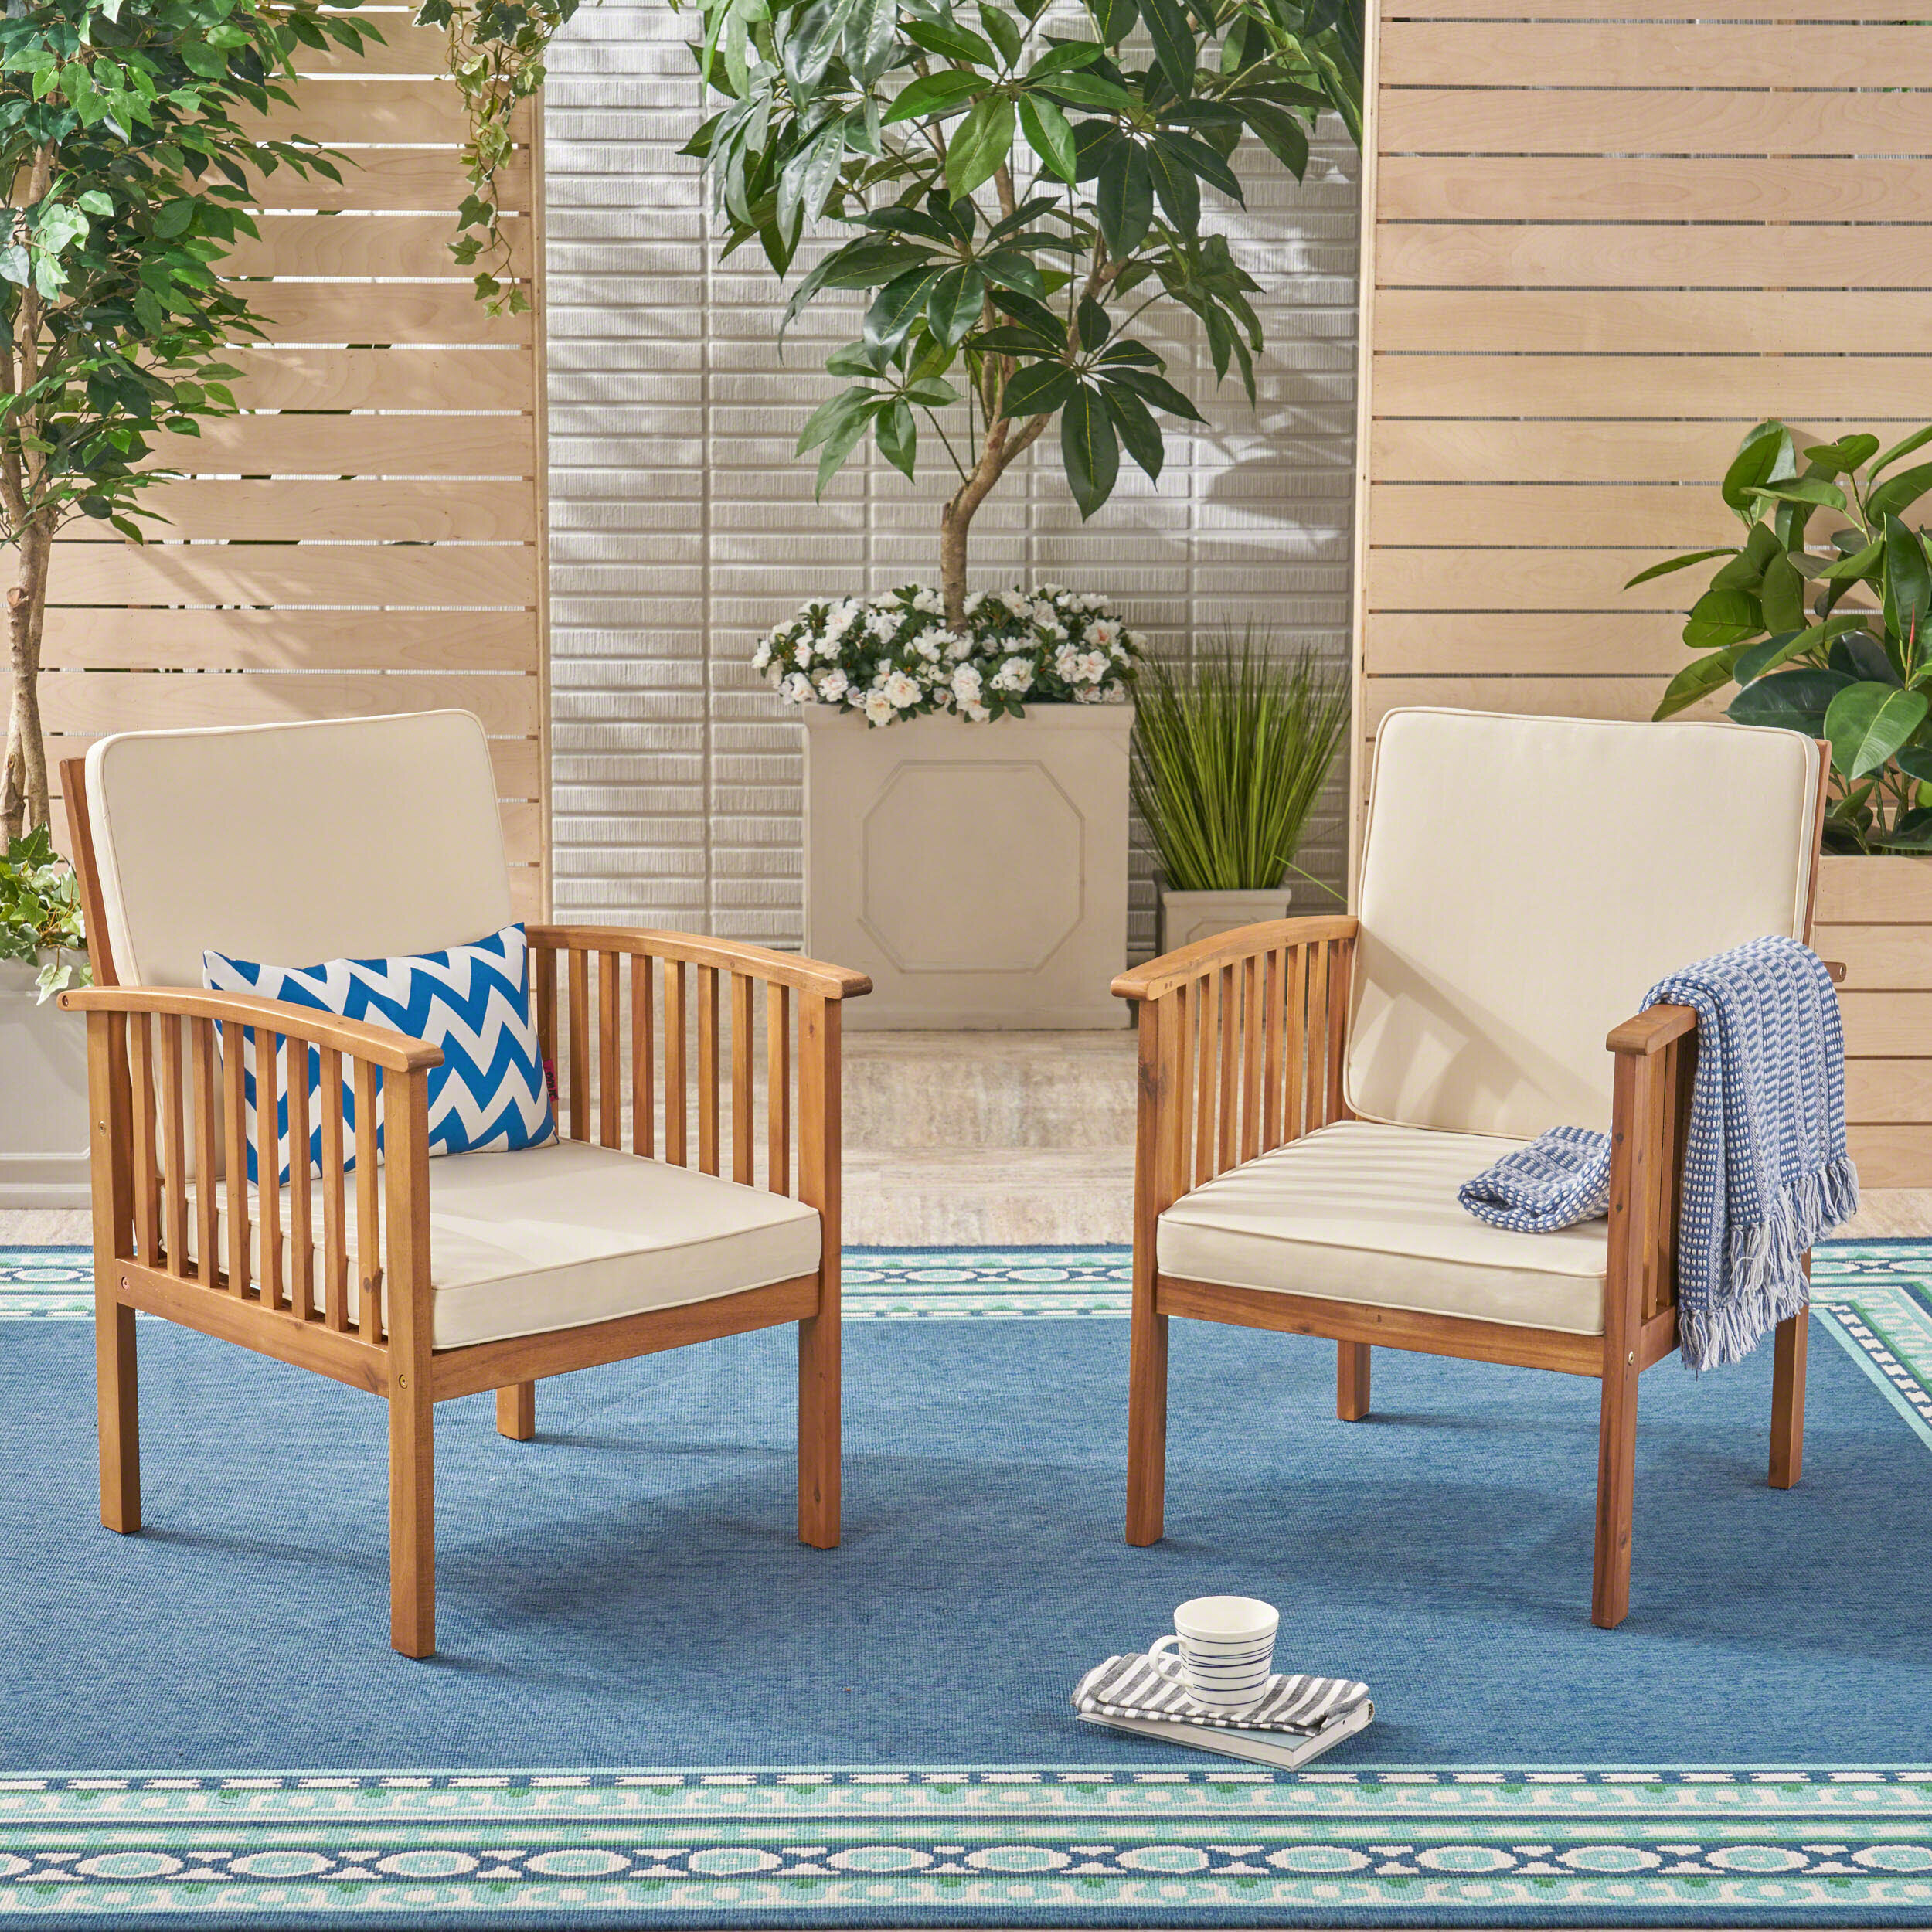 Exceptionnel Safira Outdoor Patio Chair With Cushions